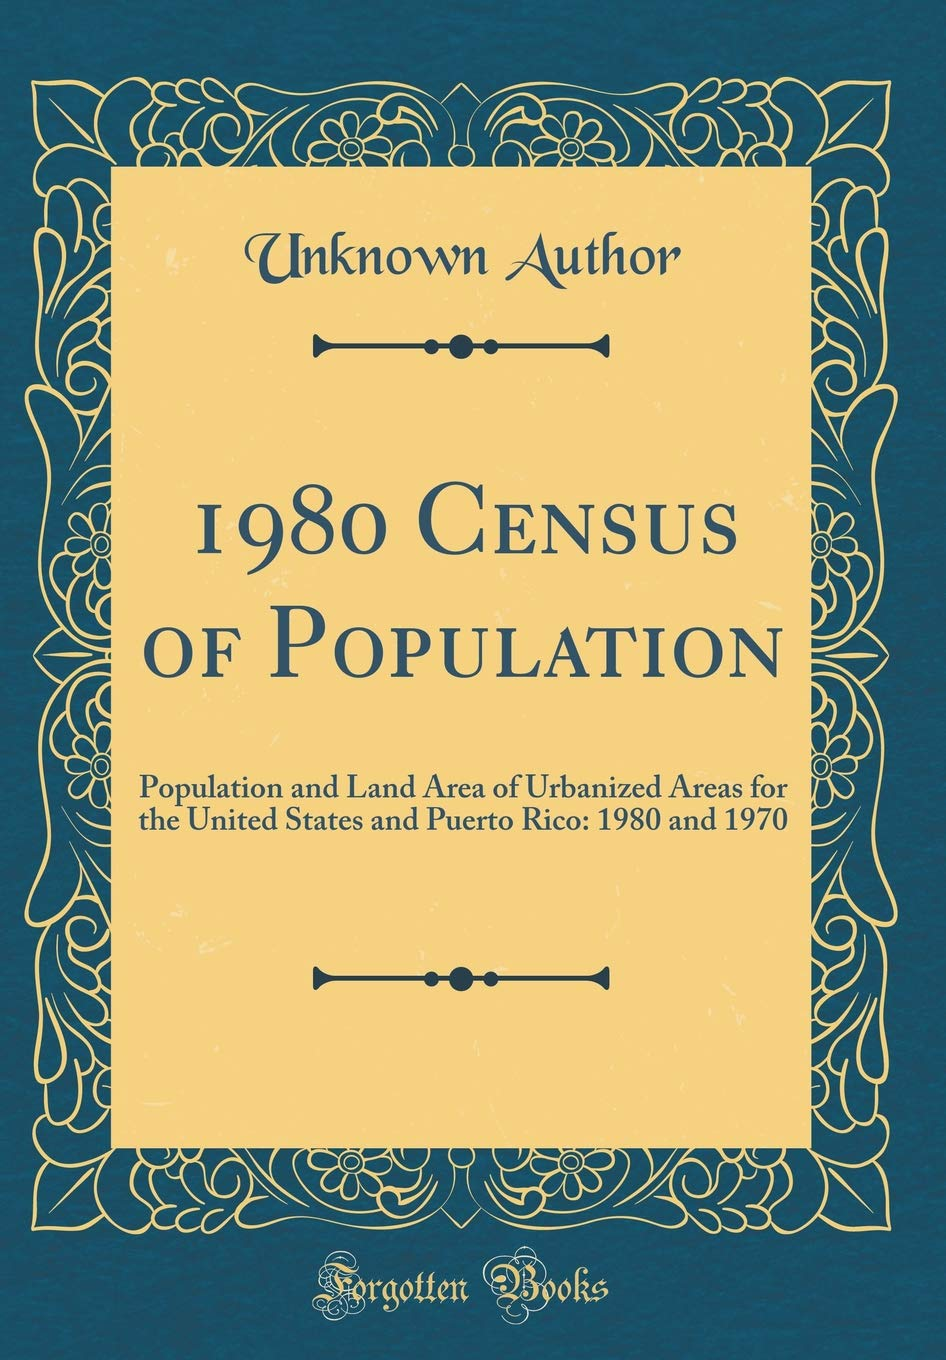 1980 Census of Population: Population and Land Area of Urbanized Areas for the United States and Puerto Rico: 1980 and 1970 (Classic Reprint) PDF